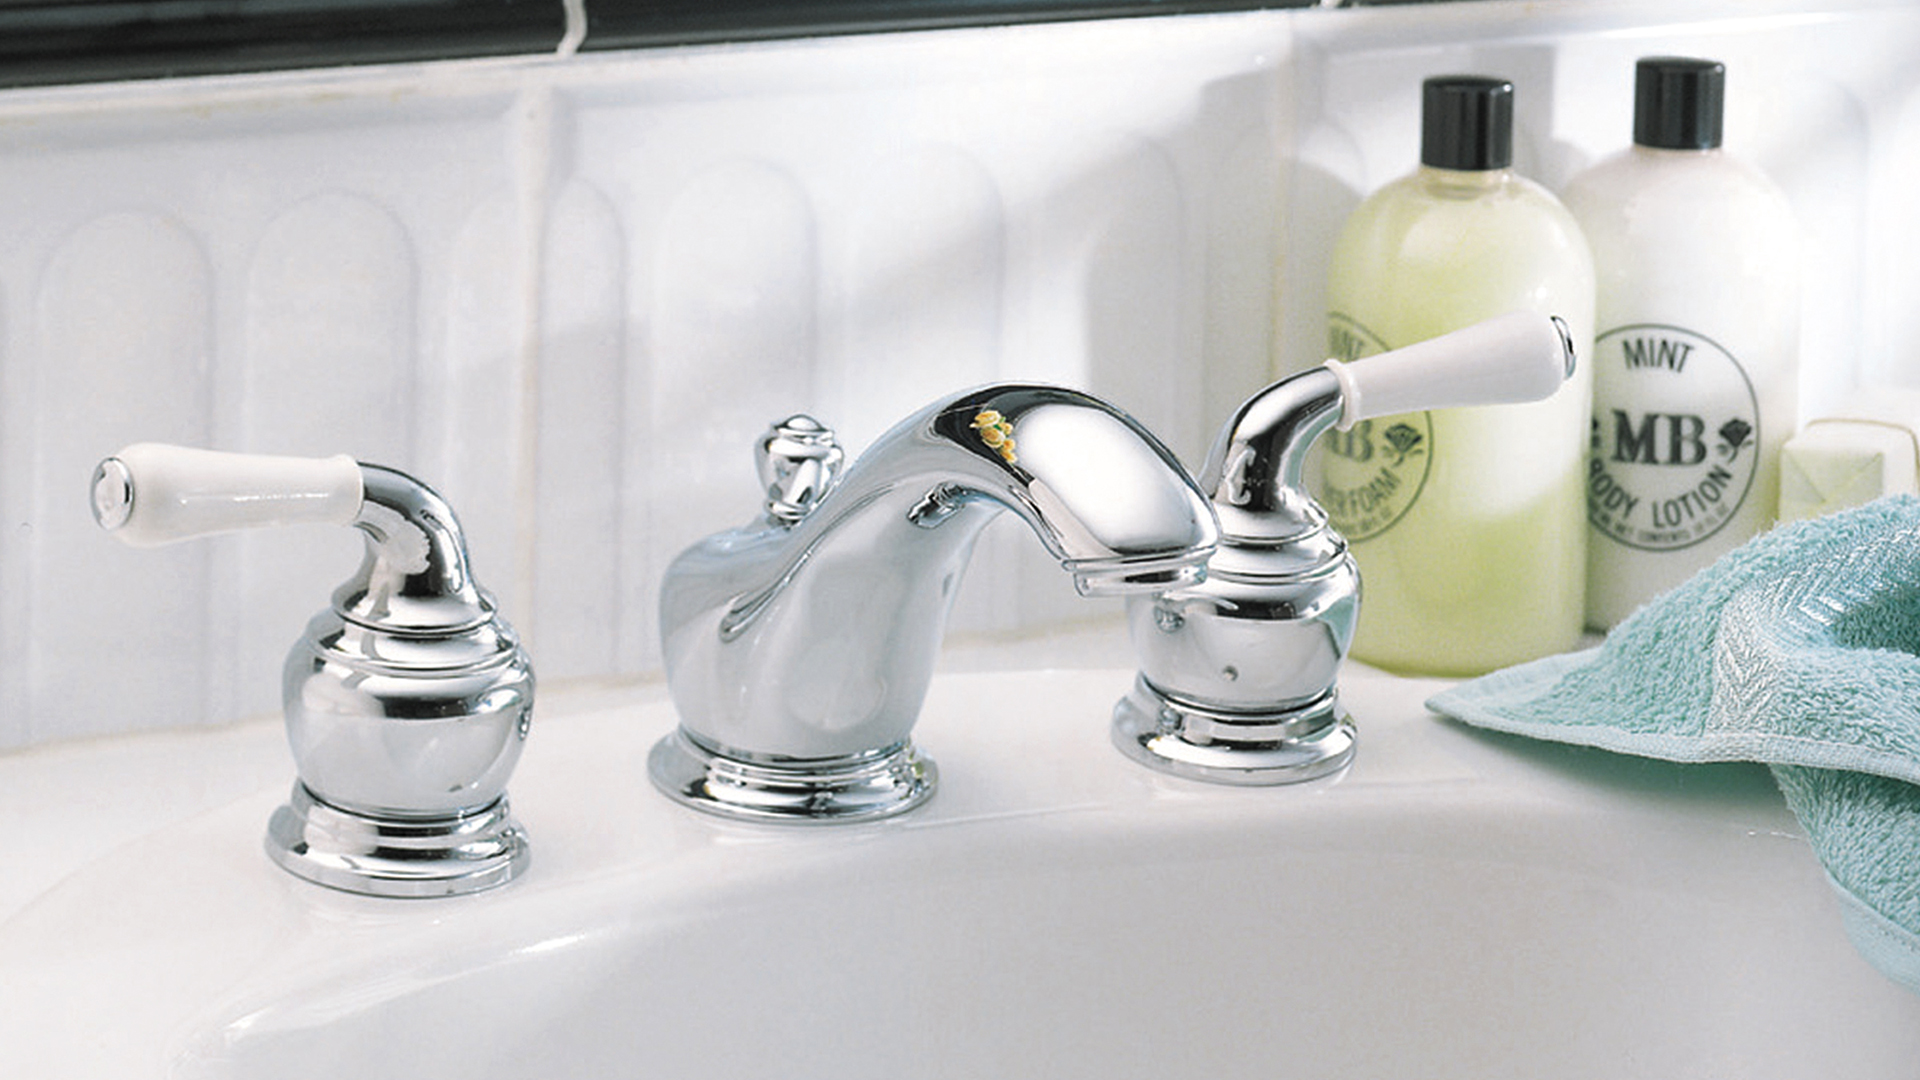 priority_designs_faucet_and_sink_design_and_development_004